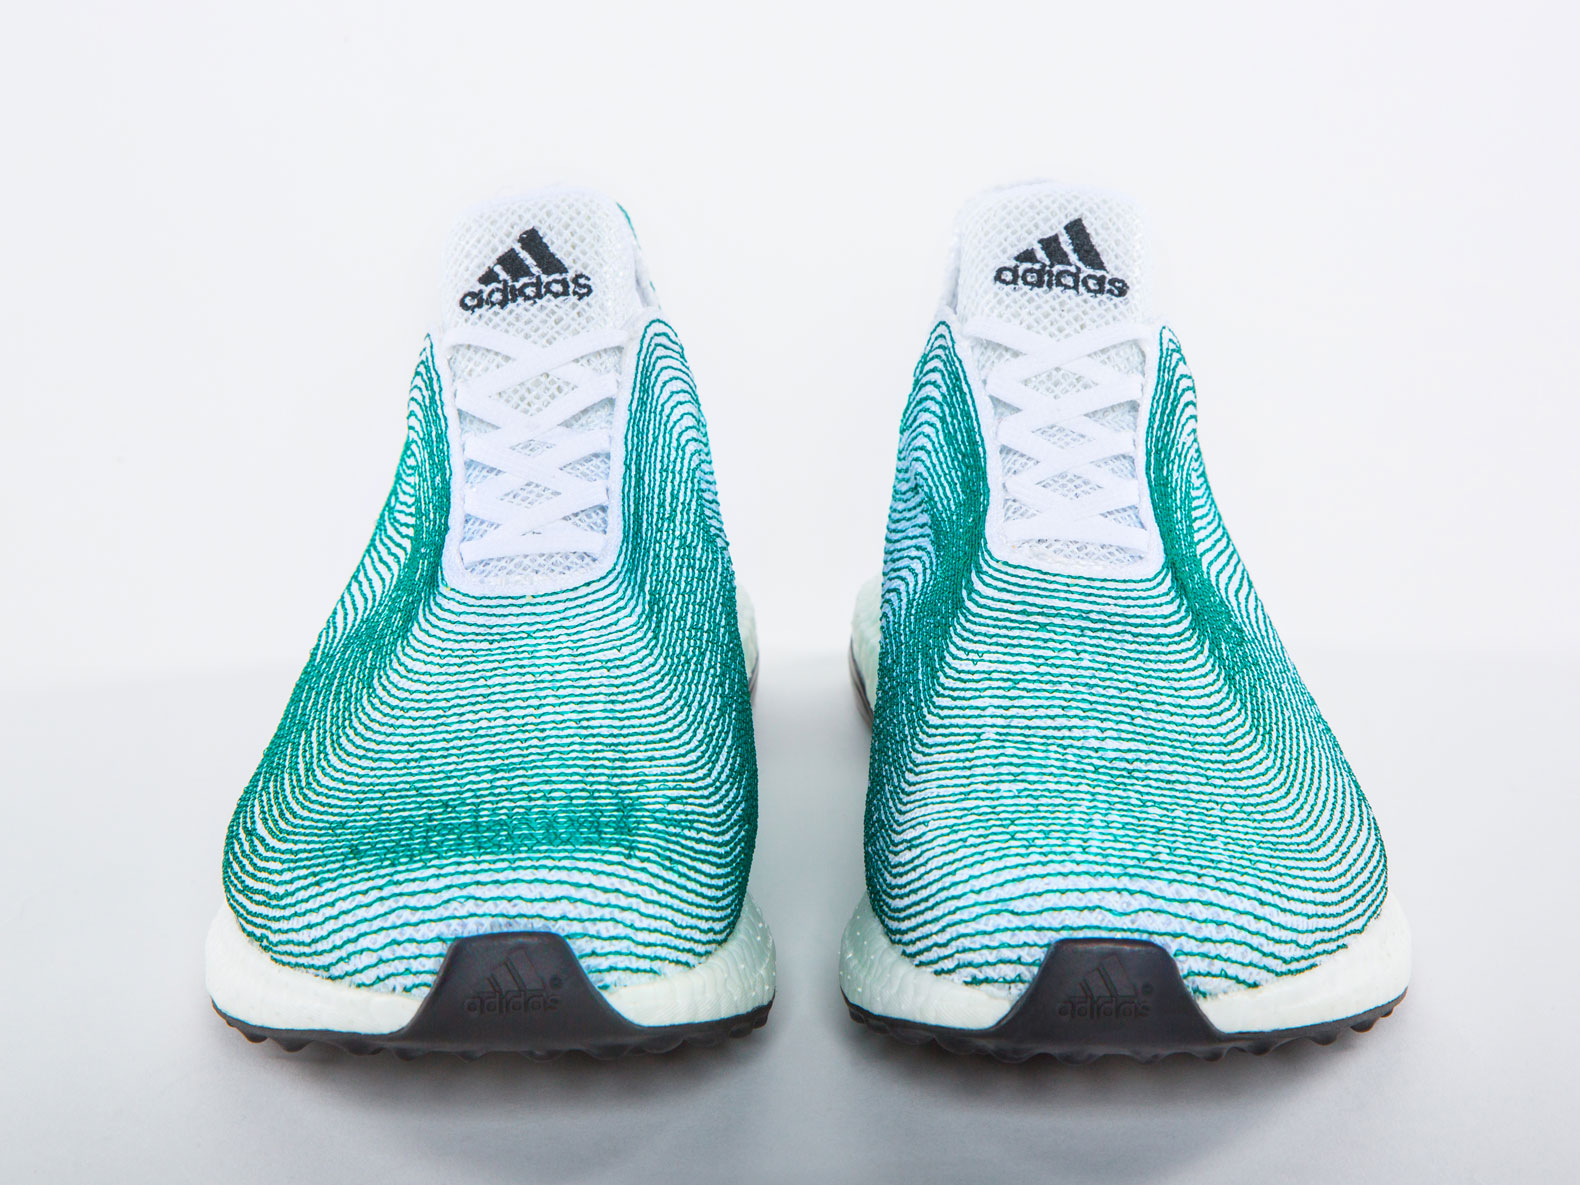 Adidas Trainers from recycled plastic